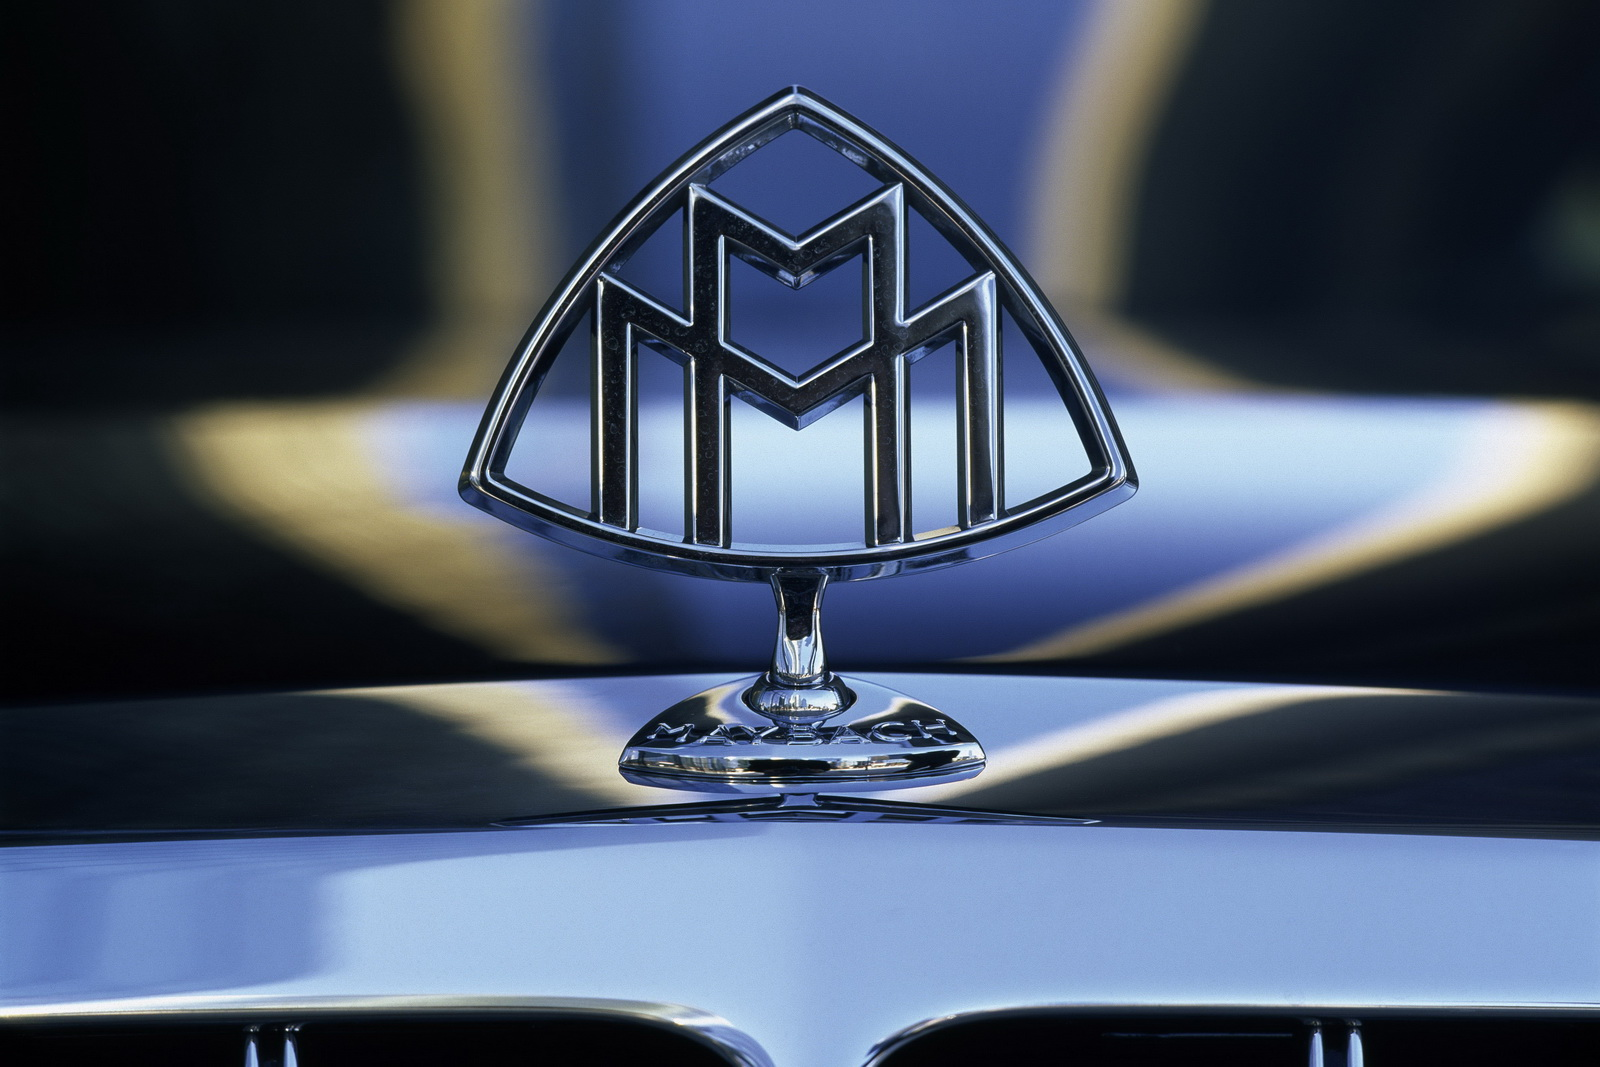 Maybach Symbol Wallpaper